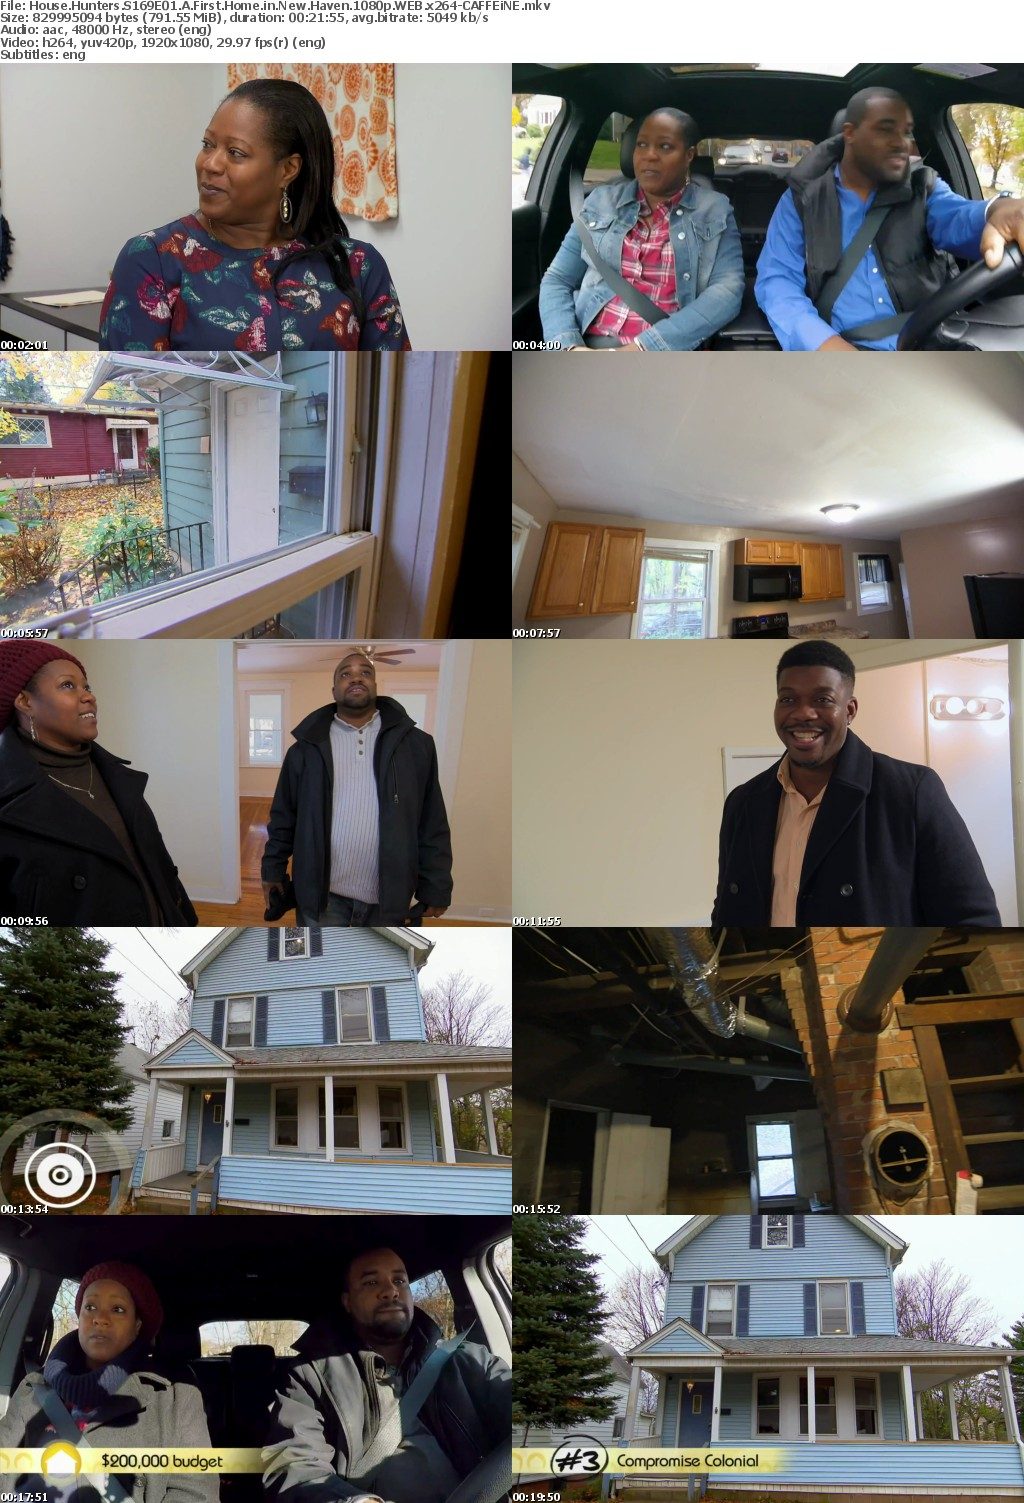 House Hunters S169E01 A First Home in New Haven 1080p WEB x264-CAFFEiNE